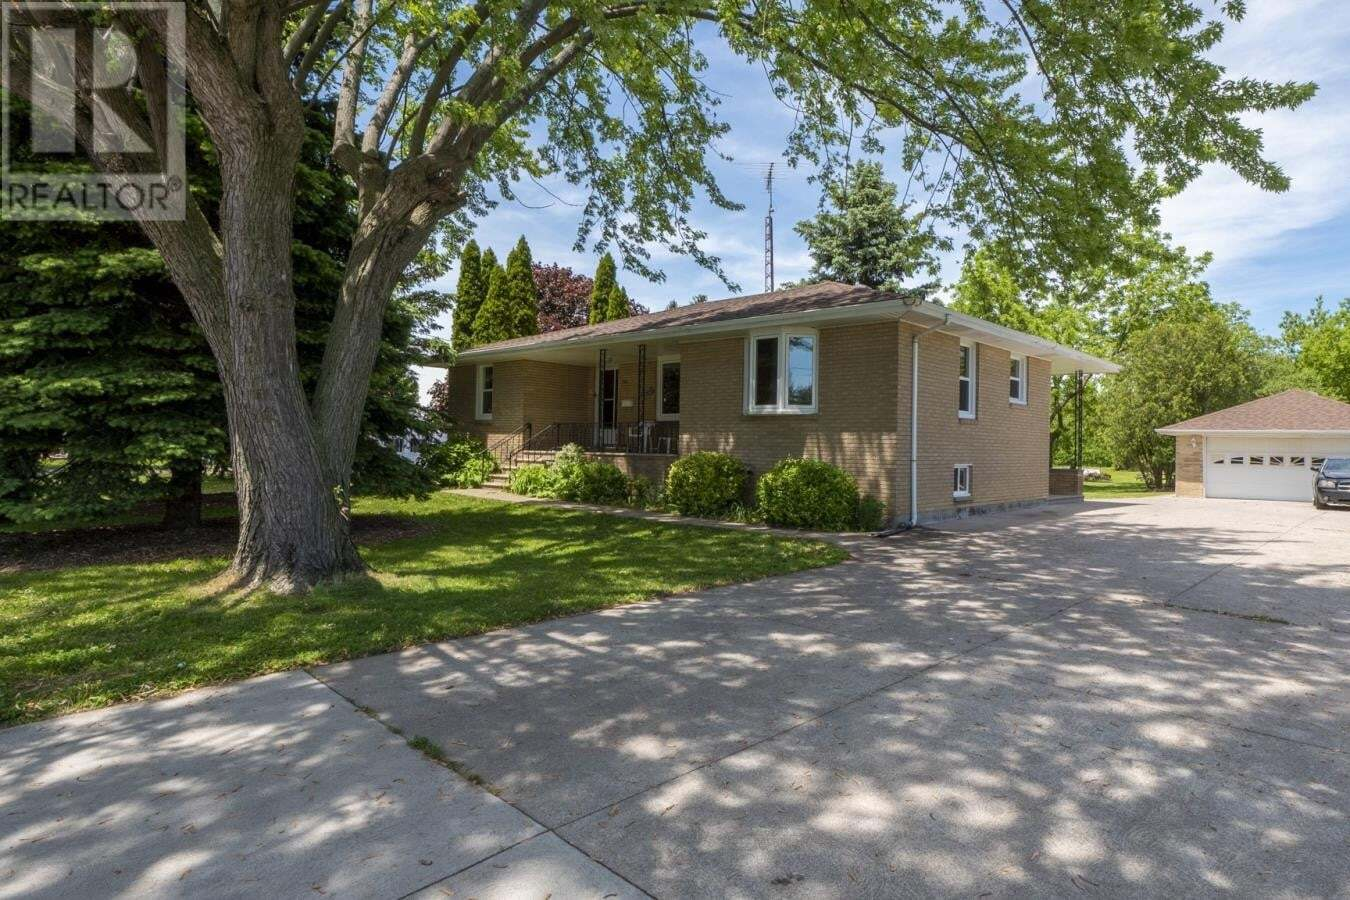 House for sale at 148 Texas Rd Amherstburg Ontario - MLS: 20006159